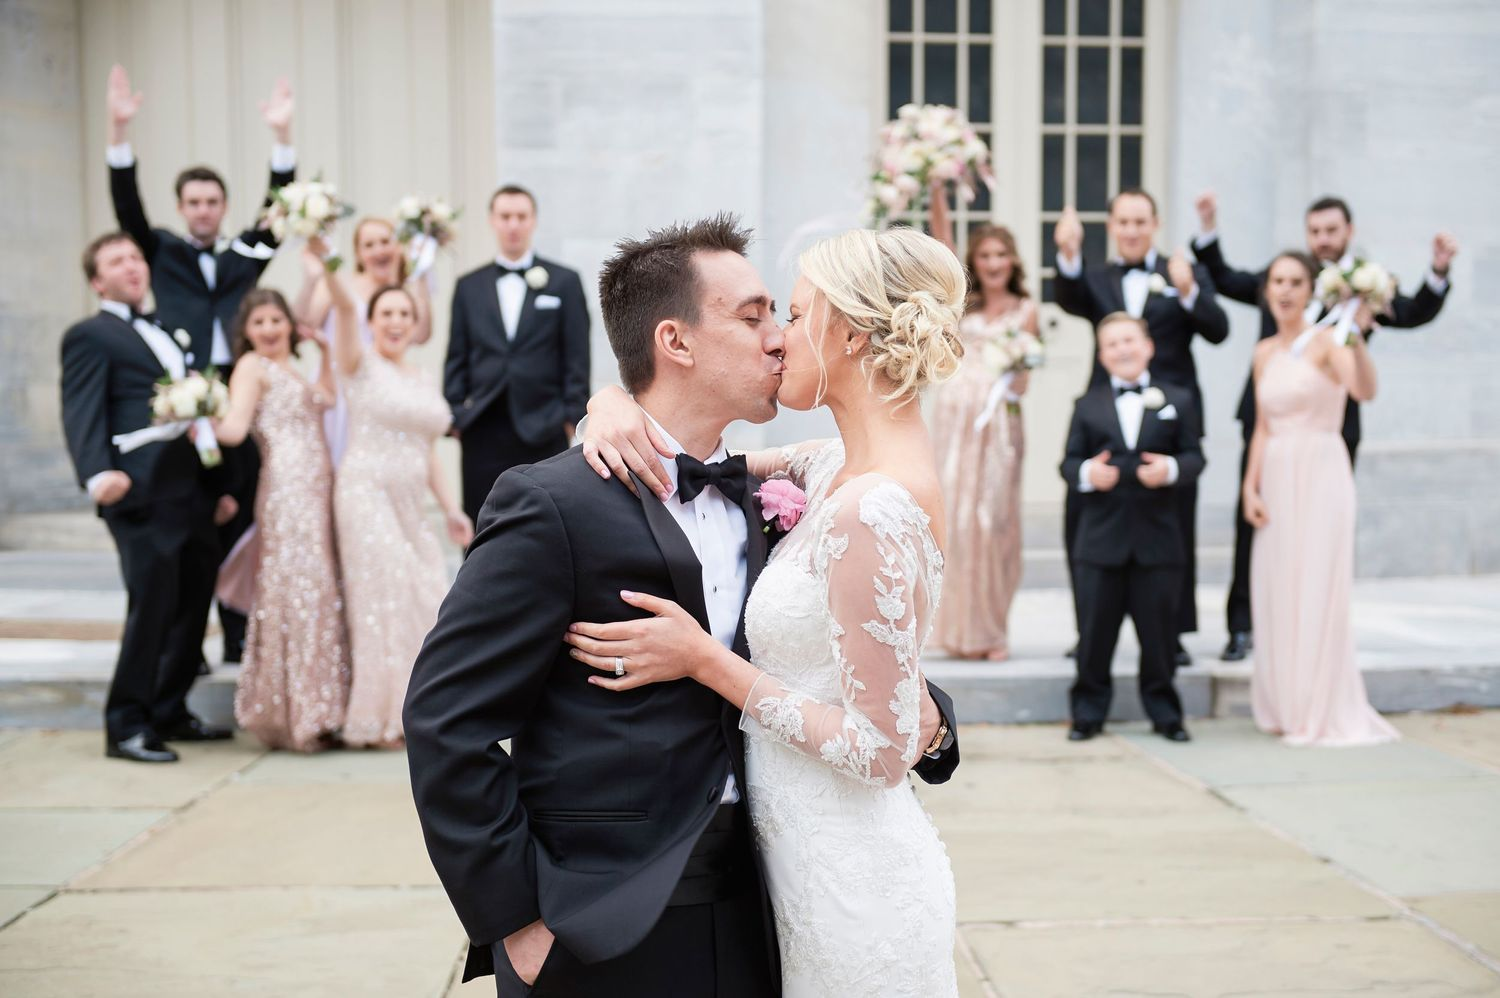 bride and groom kiss with bridal party cheering wedding photo at the Merchant exchange building in philadelphia